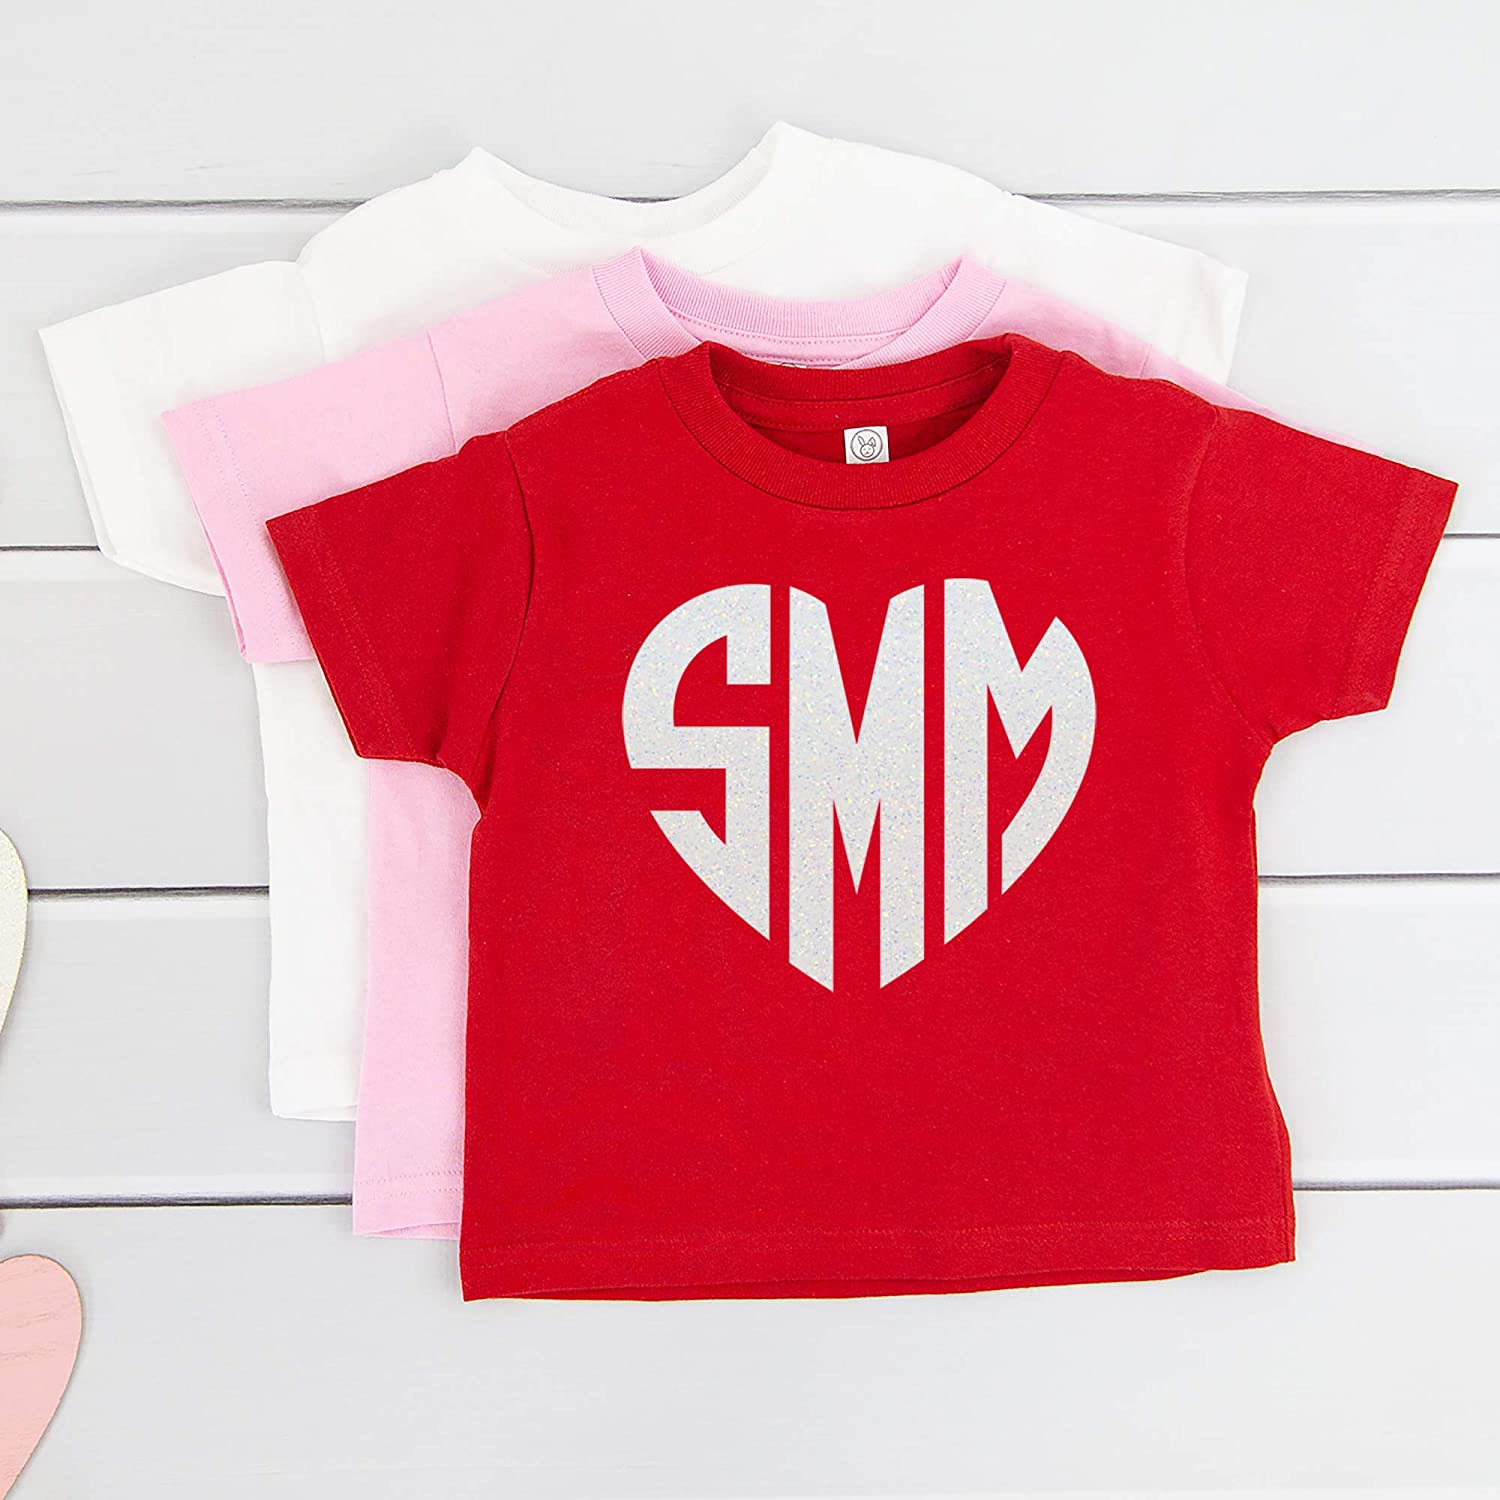 Kid's Valentine's Day Free Shipping Cheap Bargain Gift Tee - Baby Toddler Kids shop